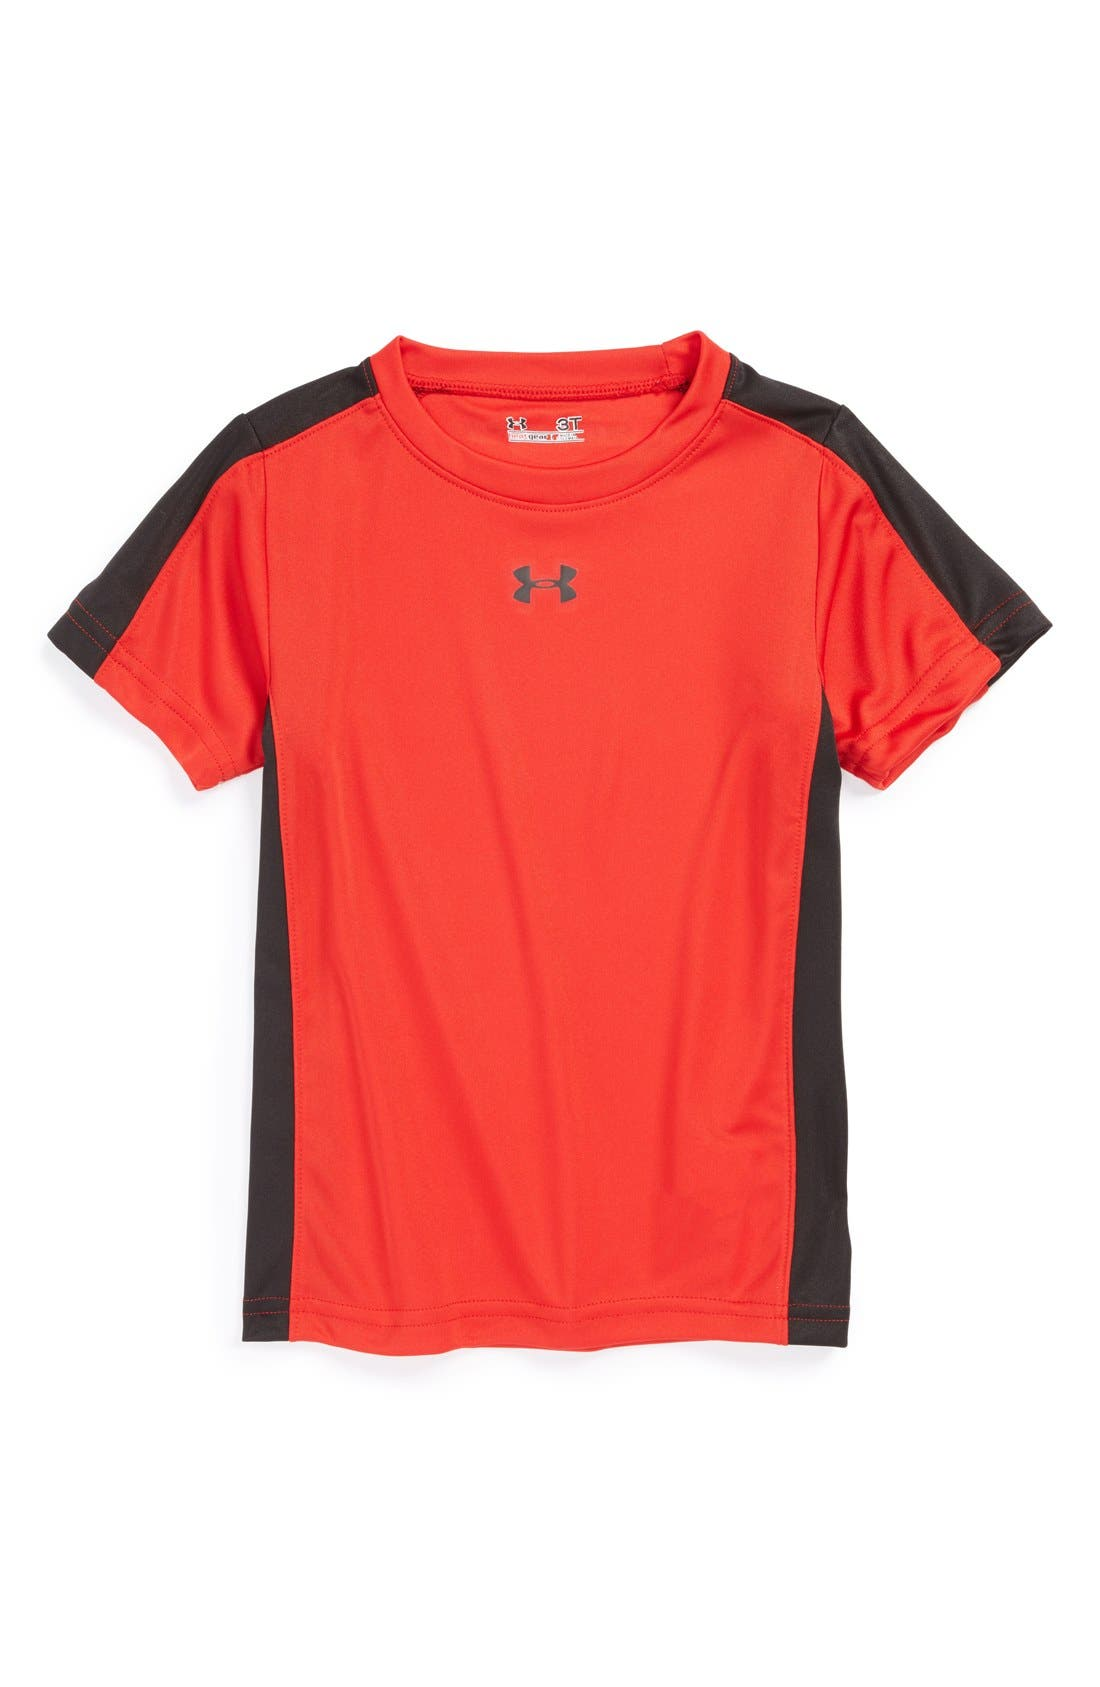 Alternate Image 1 Selected - Under Armour 'Souped Up' HeatGear® T-Shirt (Toddler Boys)